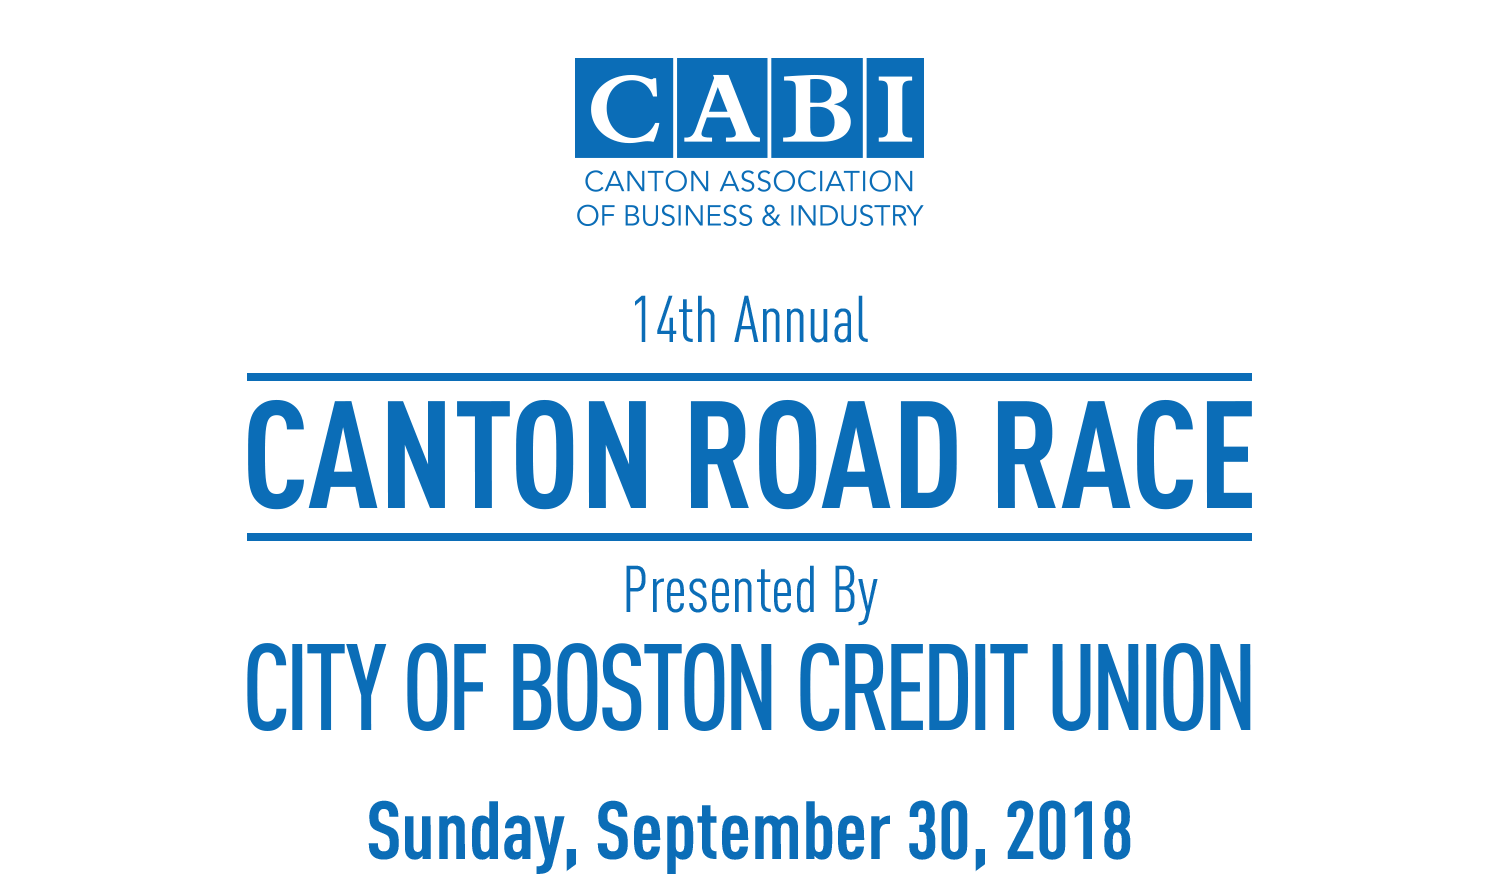 In-Kind Donations — Canton Road Race